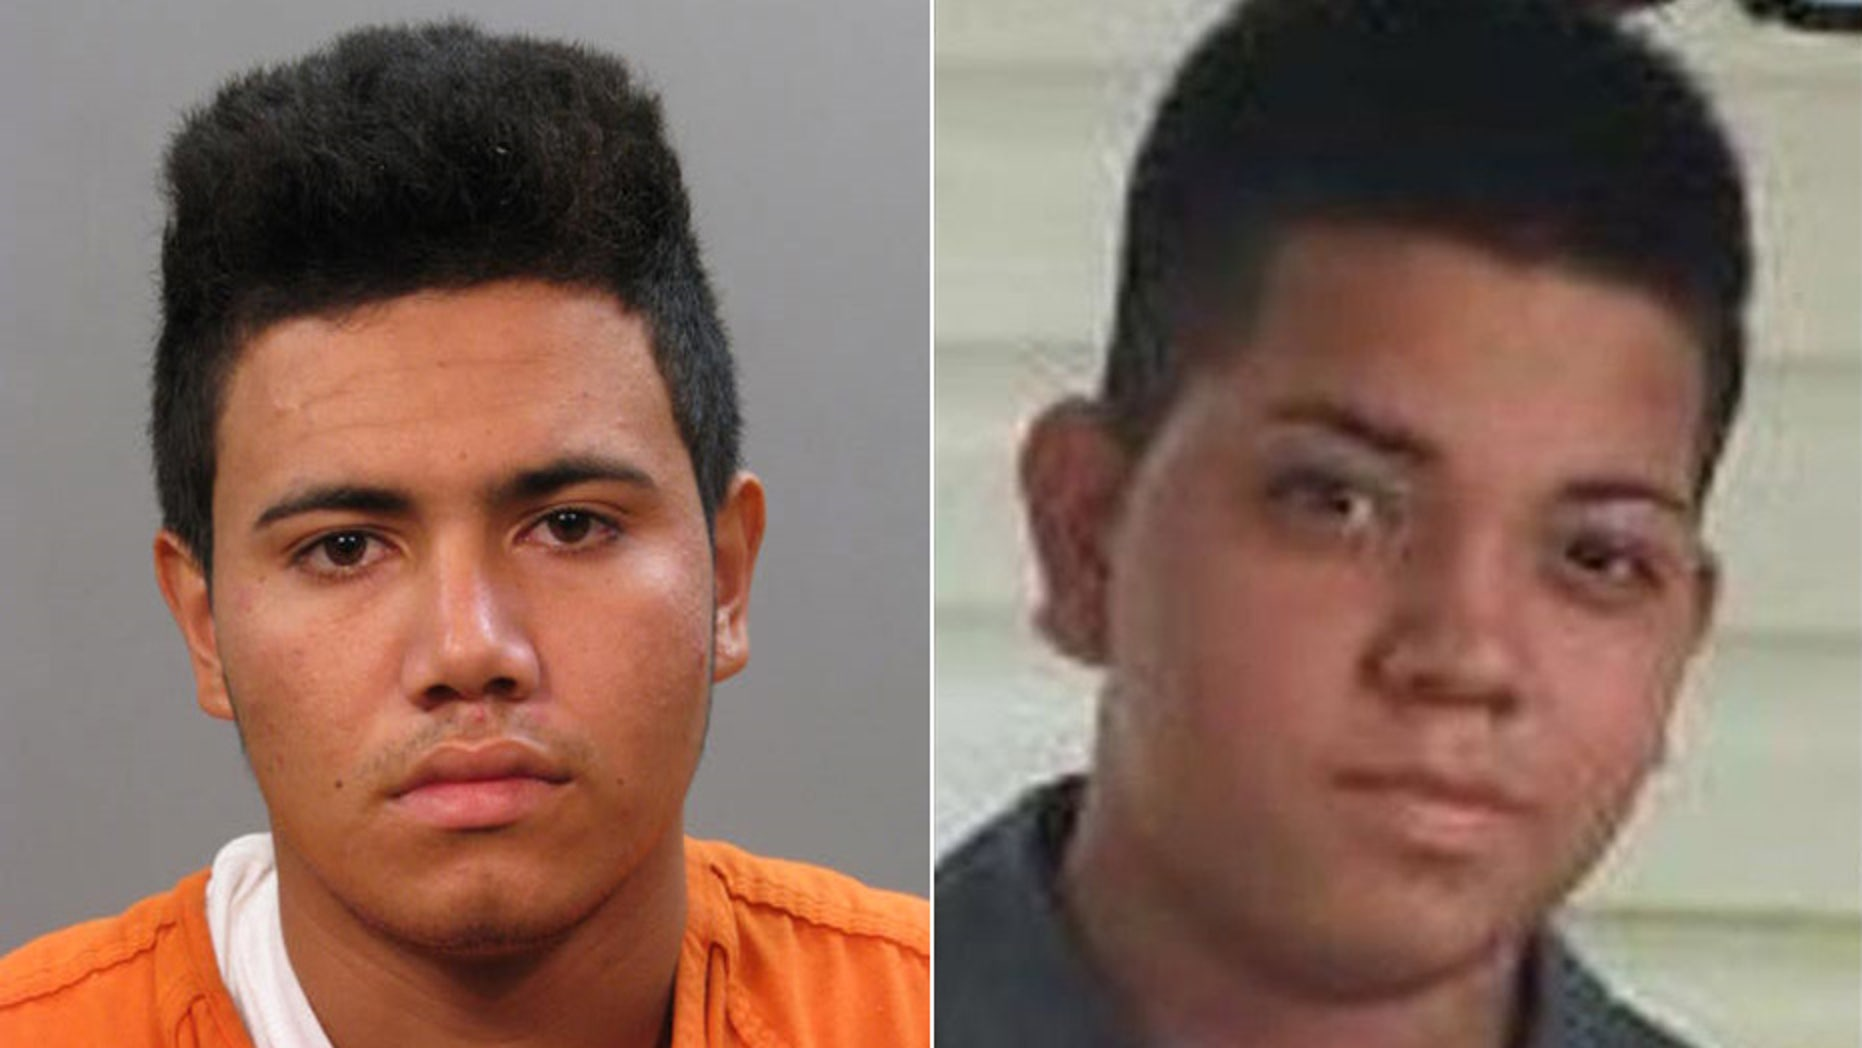 Josue Figueroa-Velasquez, left, has now been charged in the murder of 16-year-old Angel Soler, whose body was found last year in New York's Long Island.